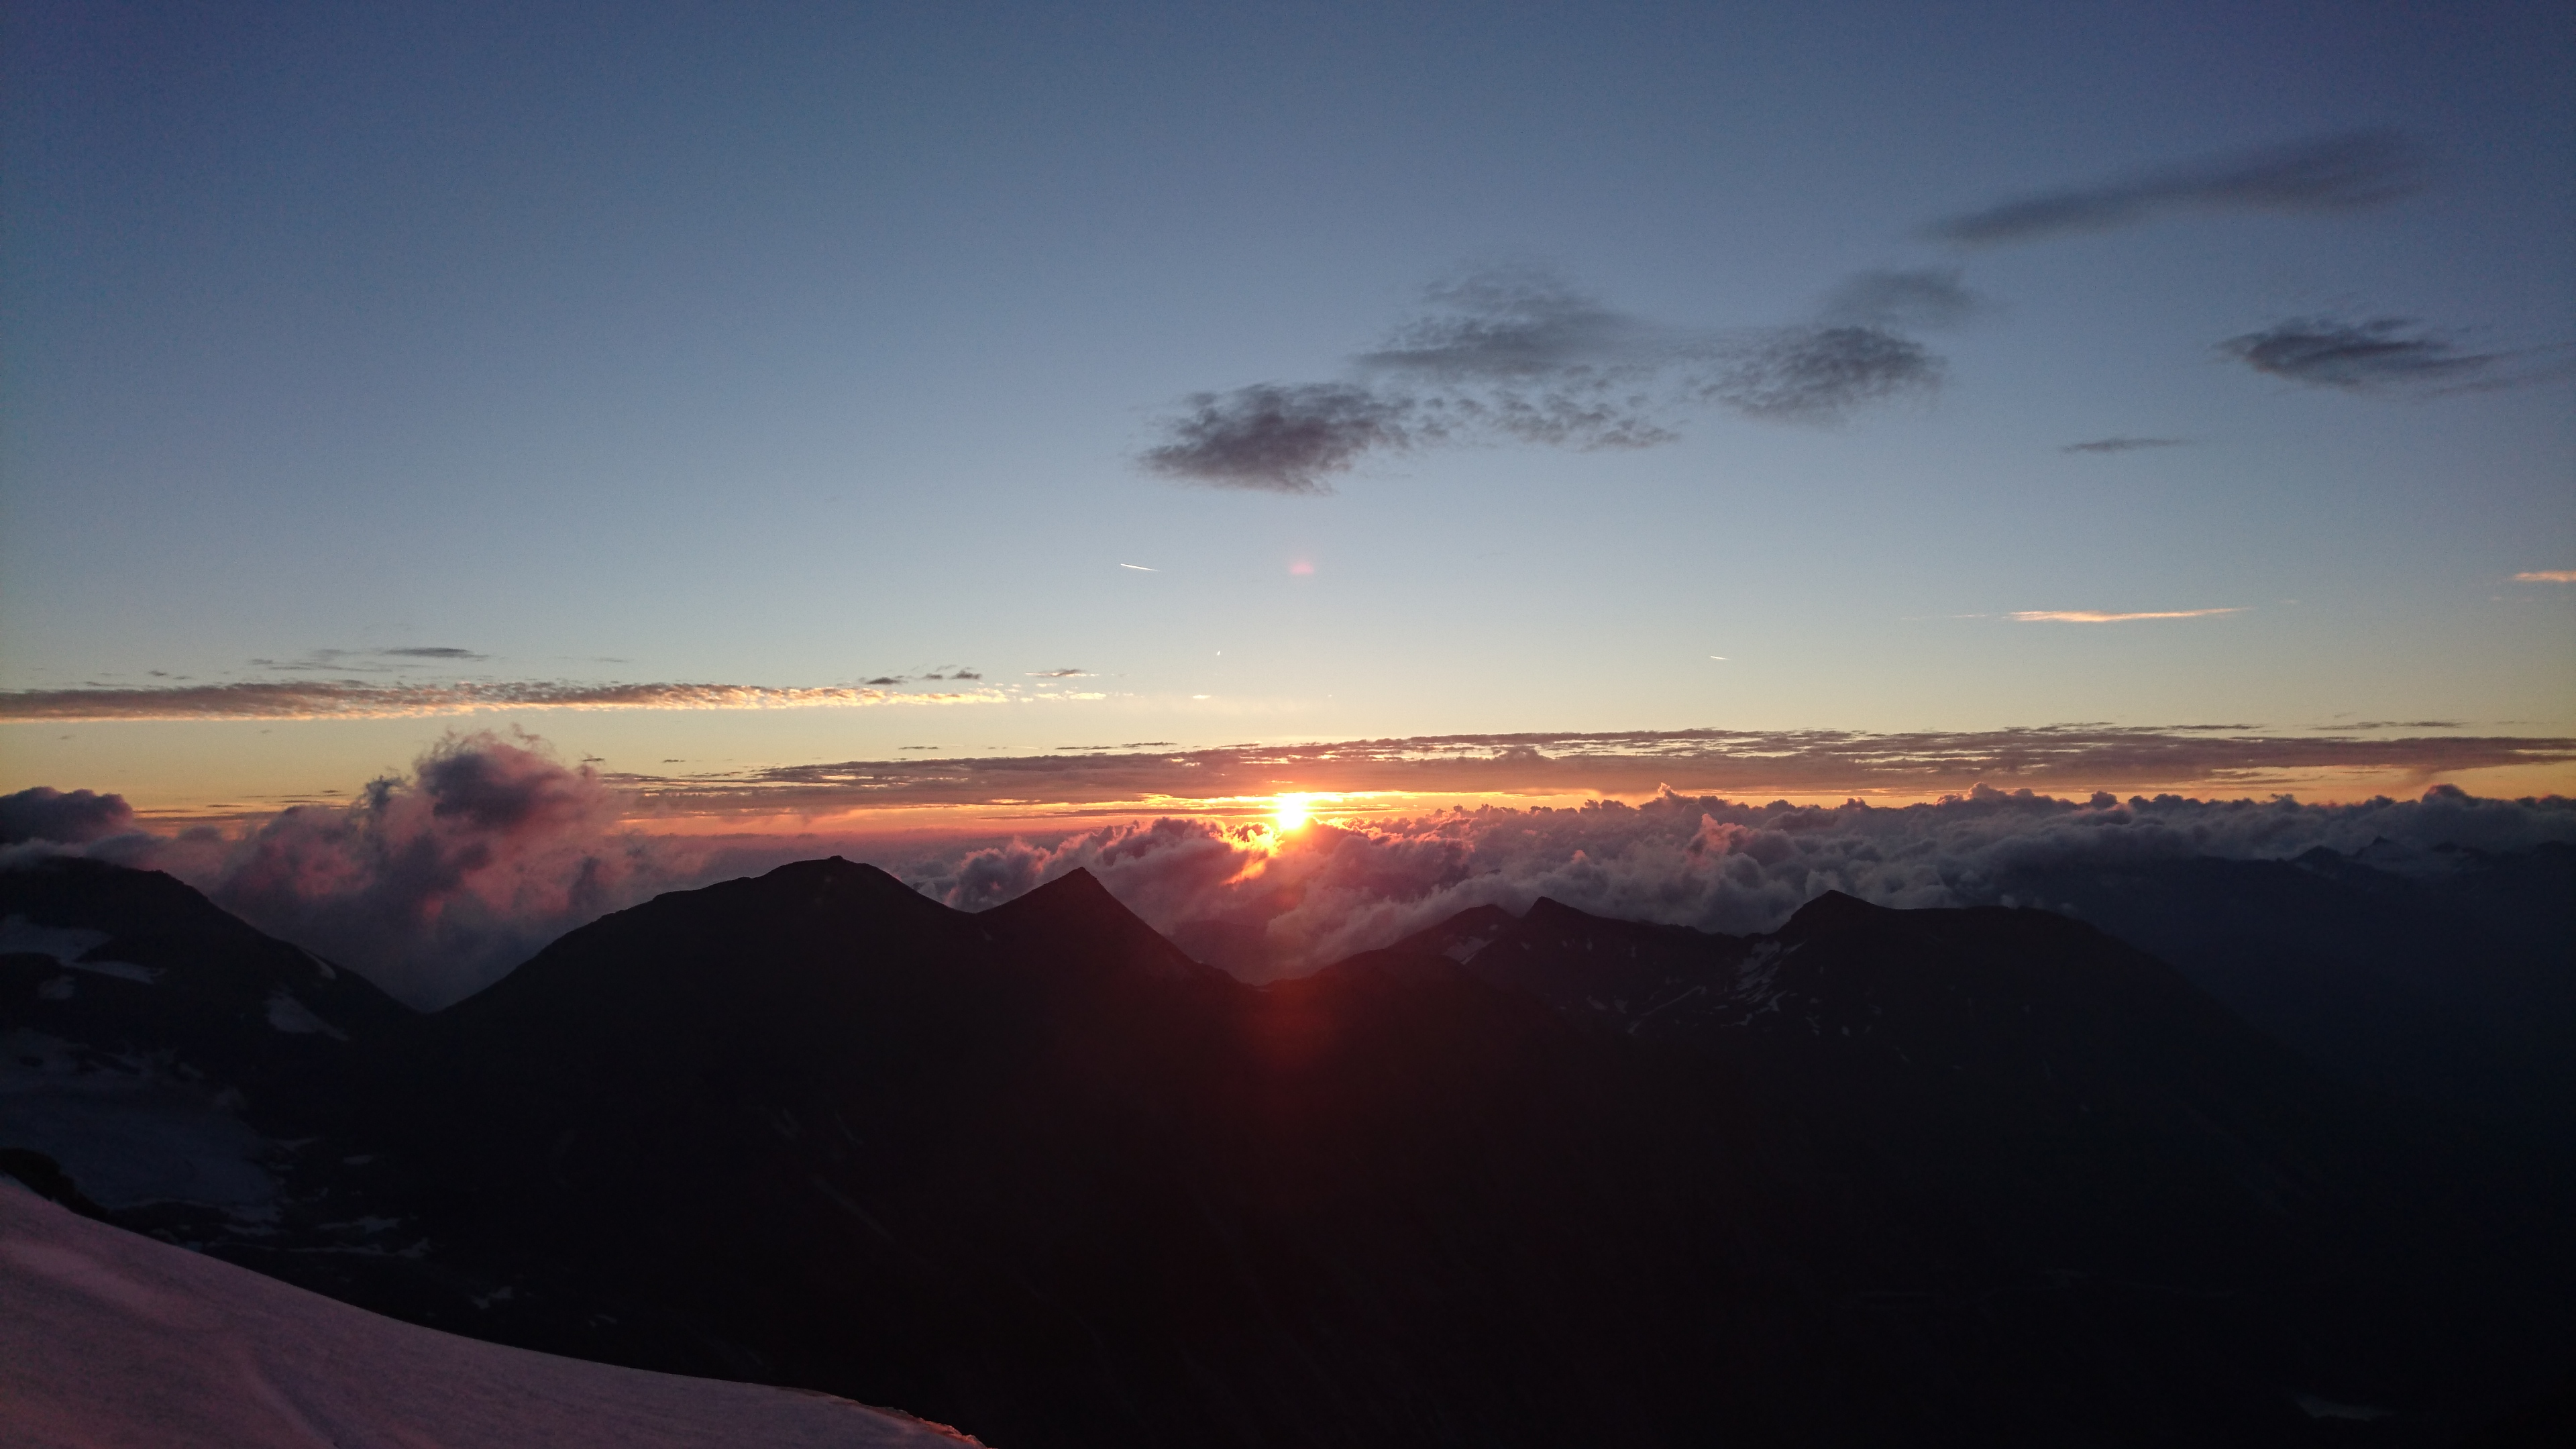 sunrise under grossglockner